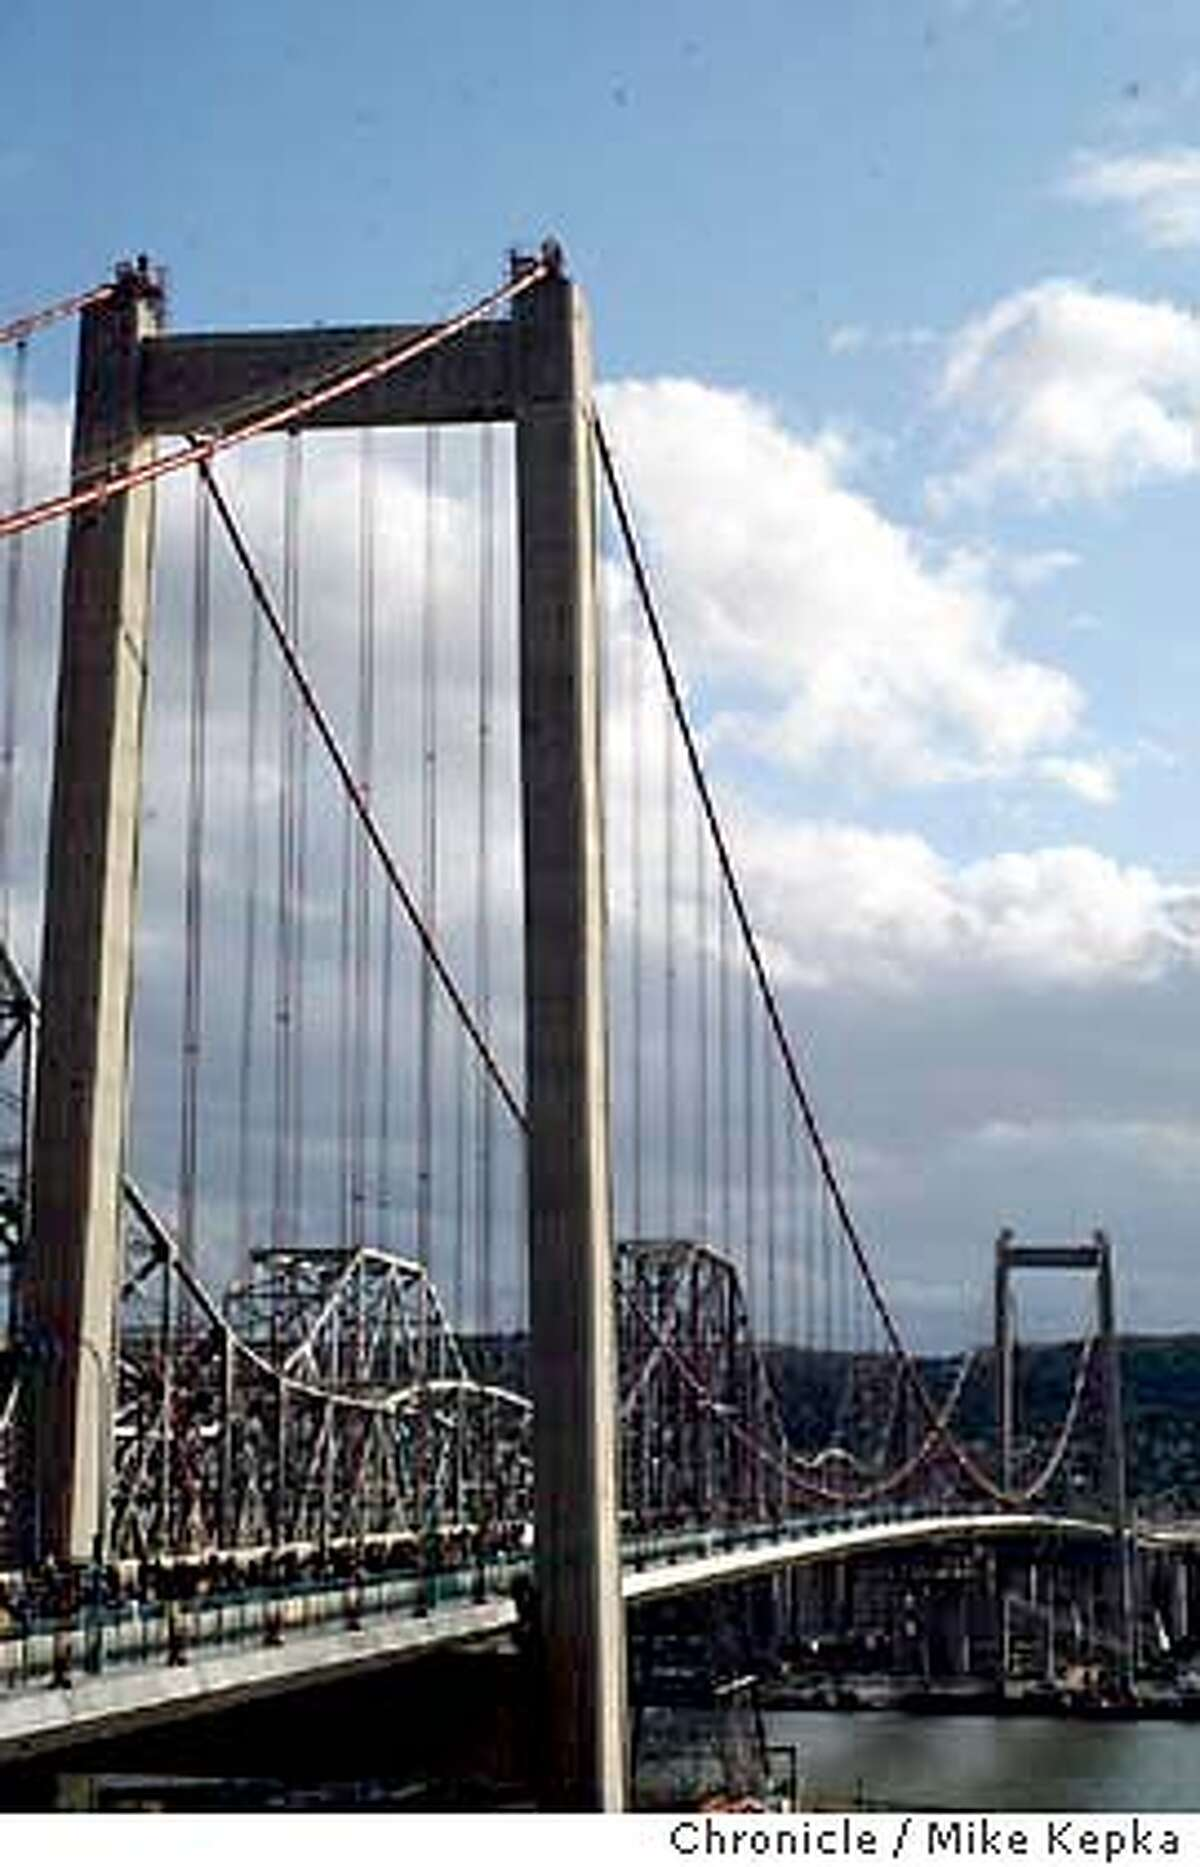 carquinez090004_mk.jpg The new Carquinez bridge opened to foot traffic for the first time Saturday. Thousands came to join the festivities and walk the span. 11/8/03 in Vallejo MIKE KEPKA/The San Francisco Chronicle